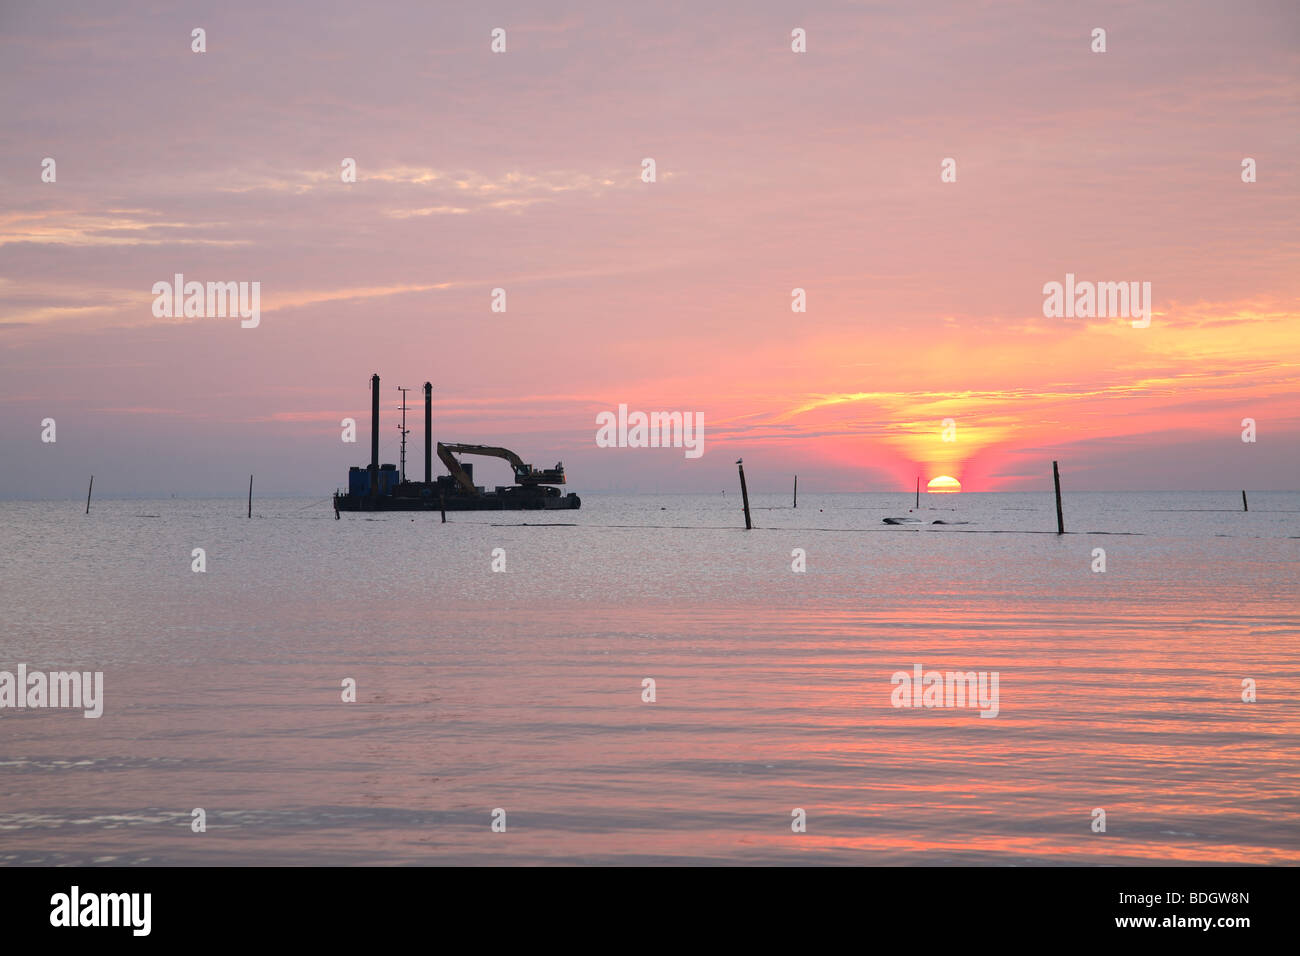 Sunrise over the Sound - Øresund - between Denmark and Sweden with dredger at anchor. Ambience. Stock Photo